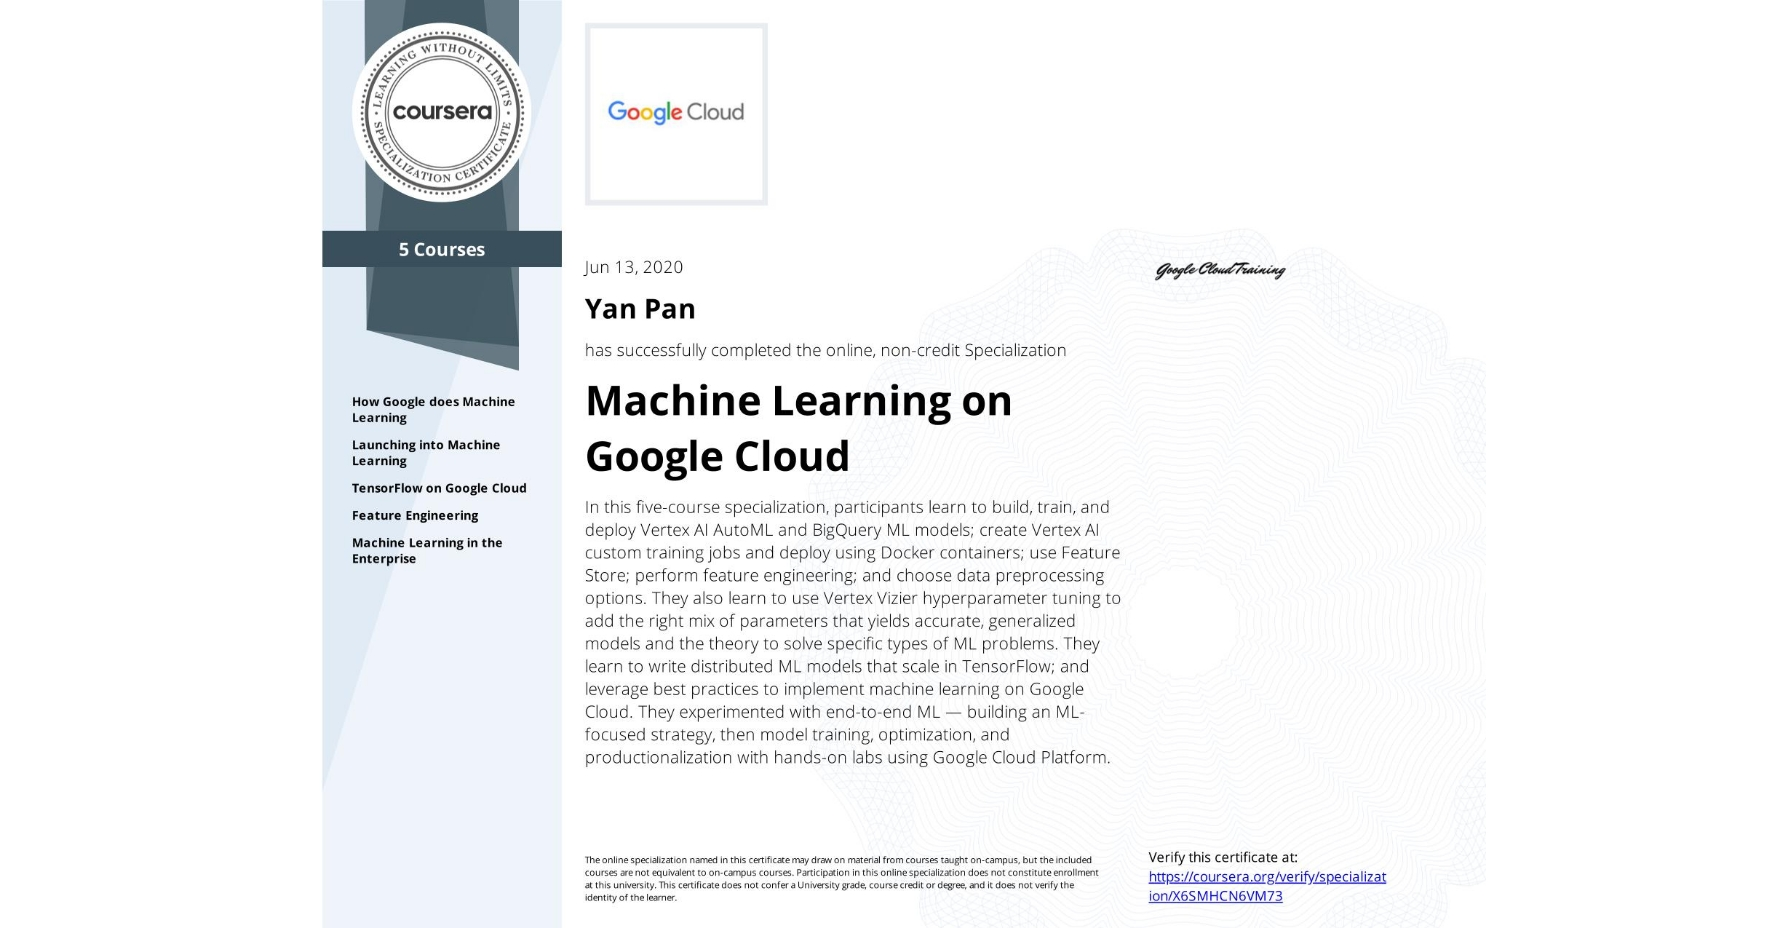 View certificate for Yan Pan, Machine Learning with TensorFlow on Google Cloud Platform, offered through Coursera. This five-course online specialization teaches course participants how to write distributed machine learning models that scale in Tensorflow, scale out the training of those models. and offer high-performance predictions. Also featured is the conversion of raw data to features in a way that allows ML to learn important characteristics from the data and bring human insight to bear on the problem. It also teaches how to incorporate the right mix of parameters that yields accurate, generalized models and knowledge of the theory to solve specific types of ML problems. Course participants experimented with end-to-end ML, starting from building an ML-focused strategy and progressing into model training, optimization, and productionalization with hands-on labs using Google Cloud Platform.